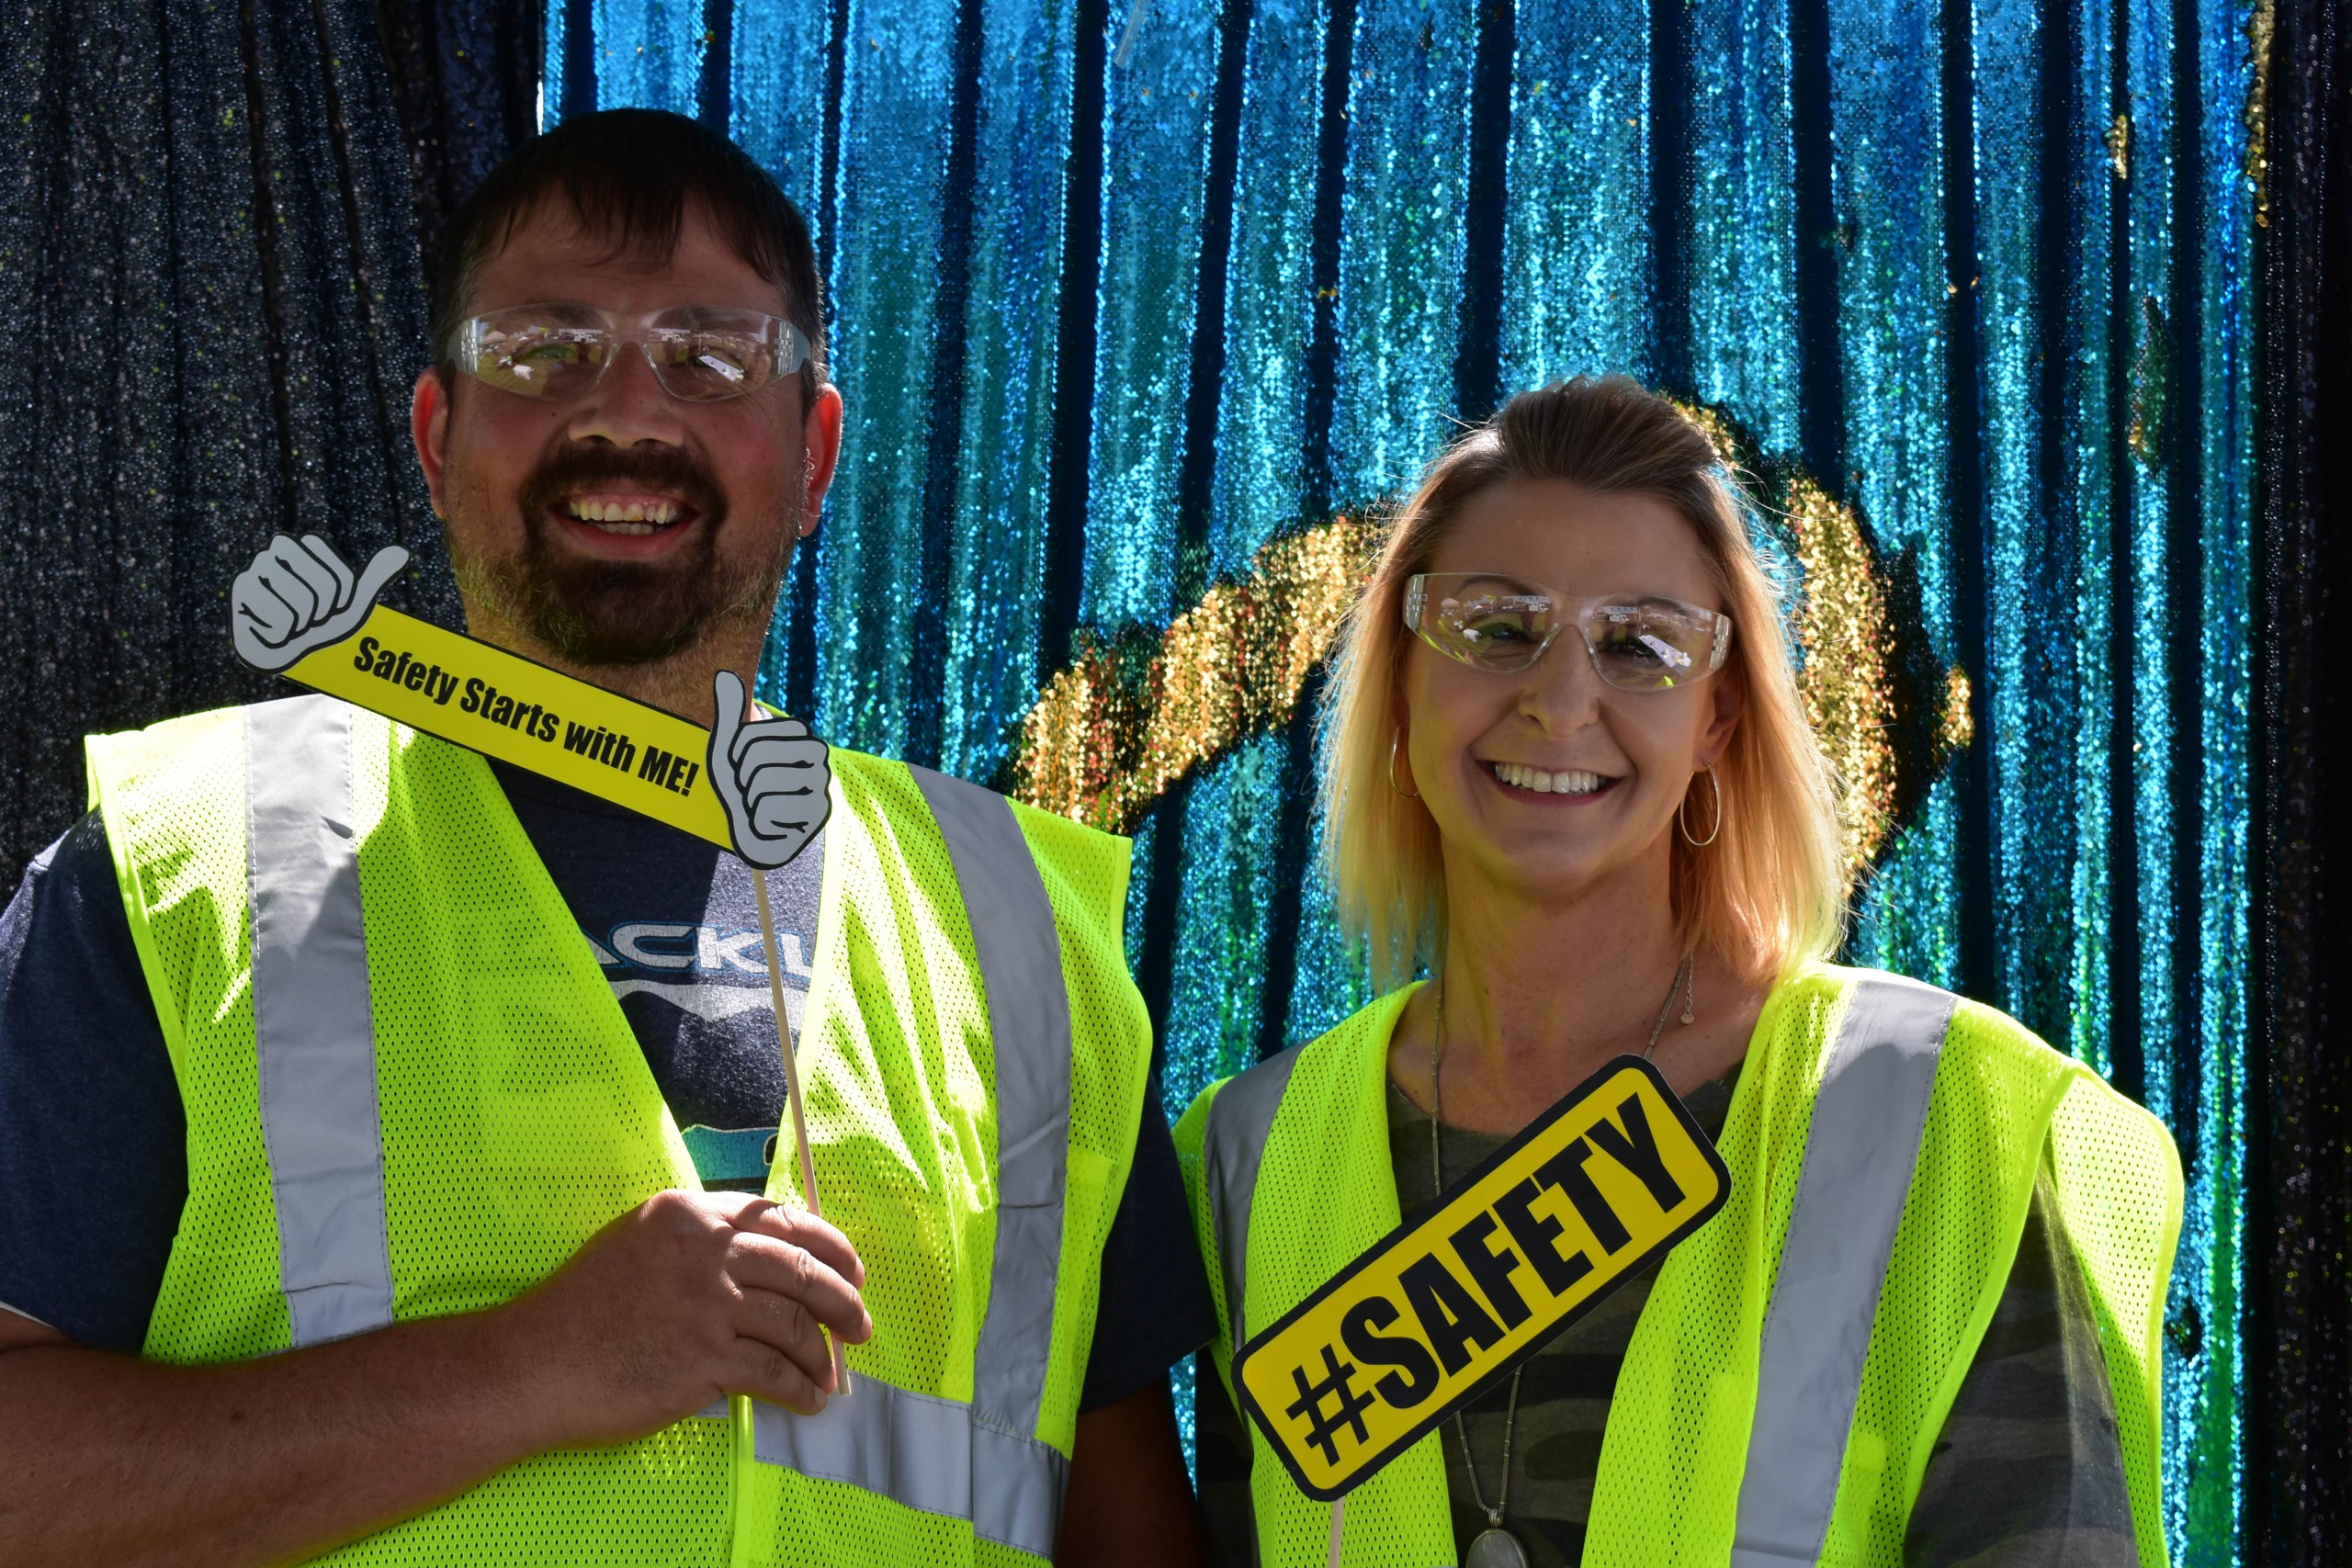 Employees showing their appreciation for safety at picture booth